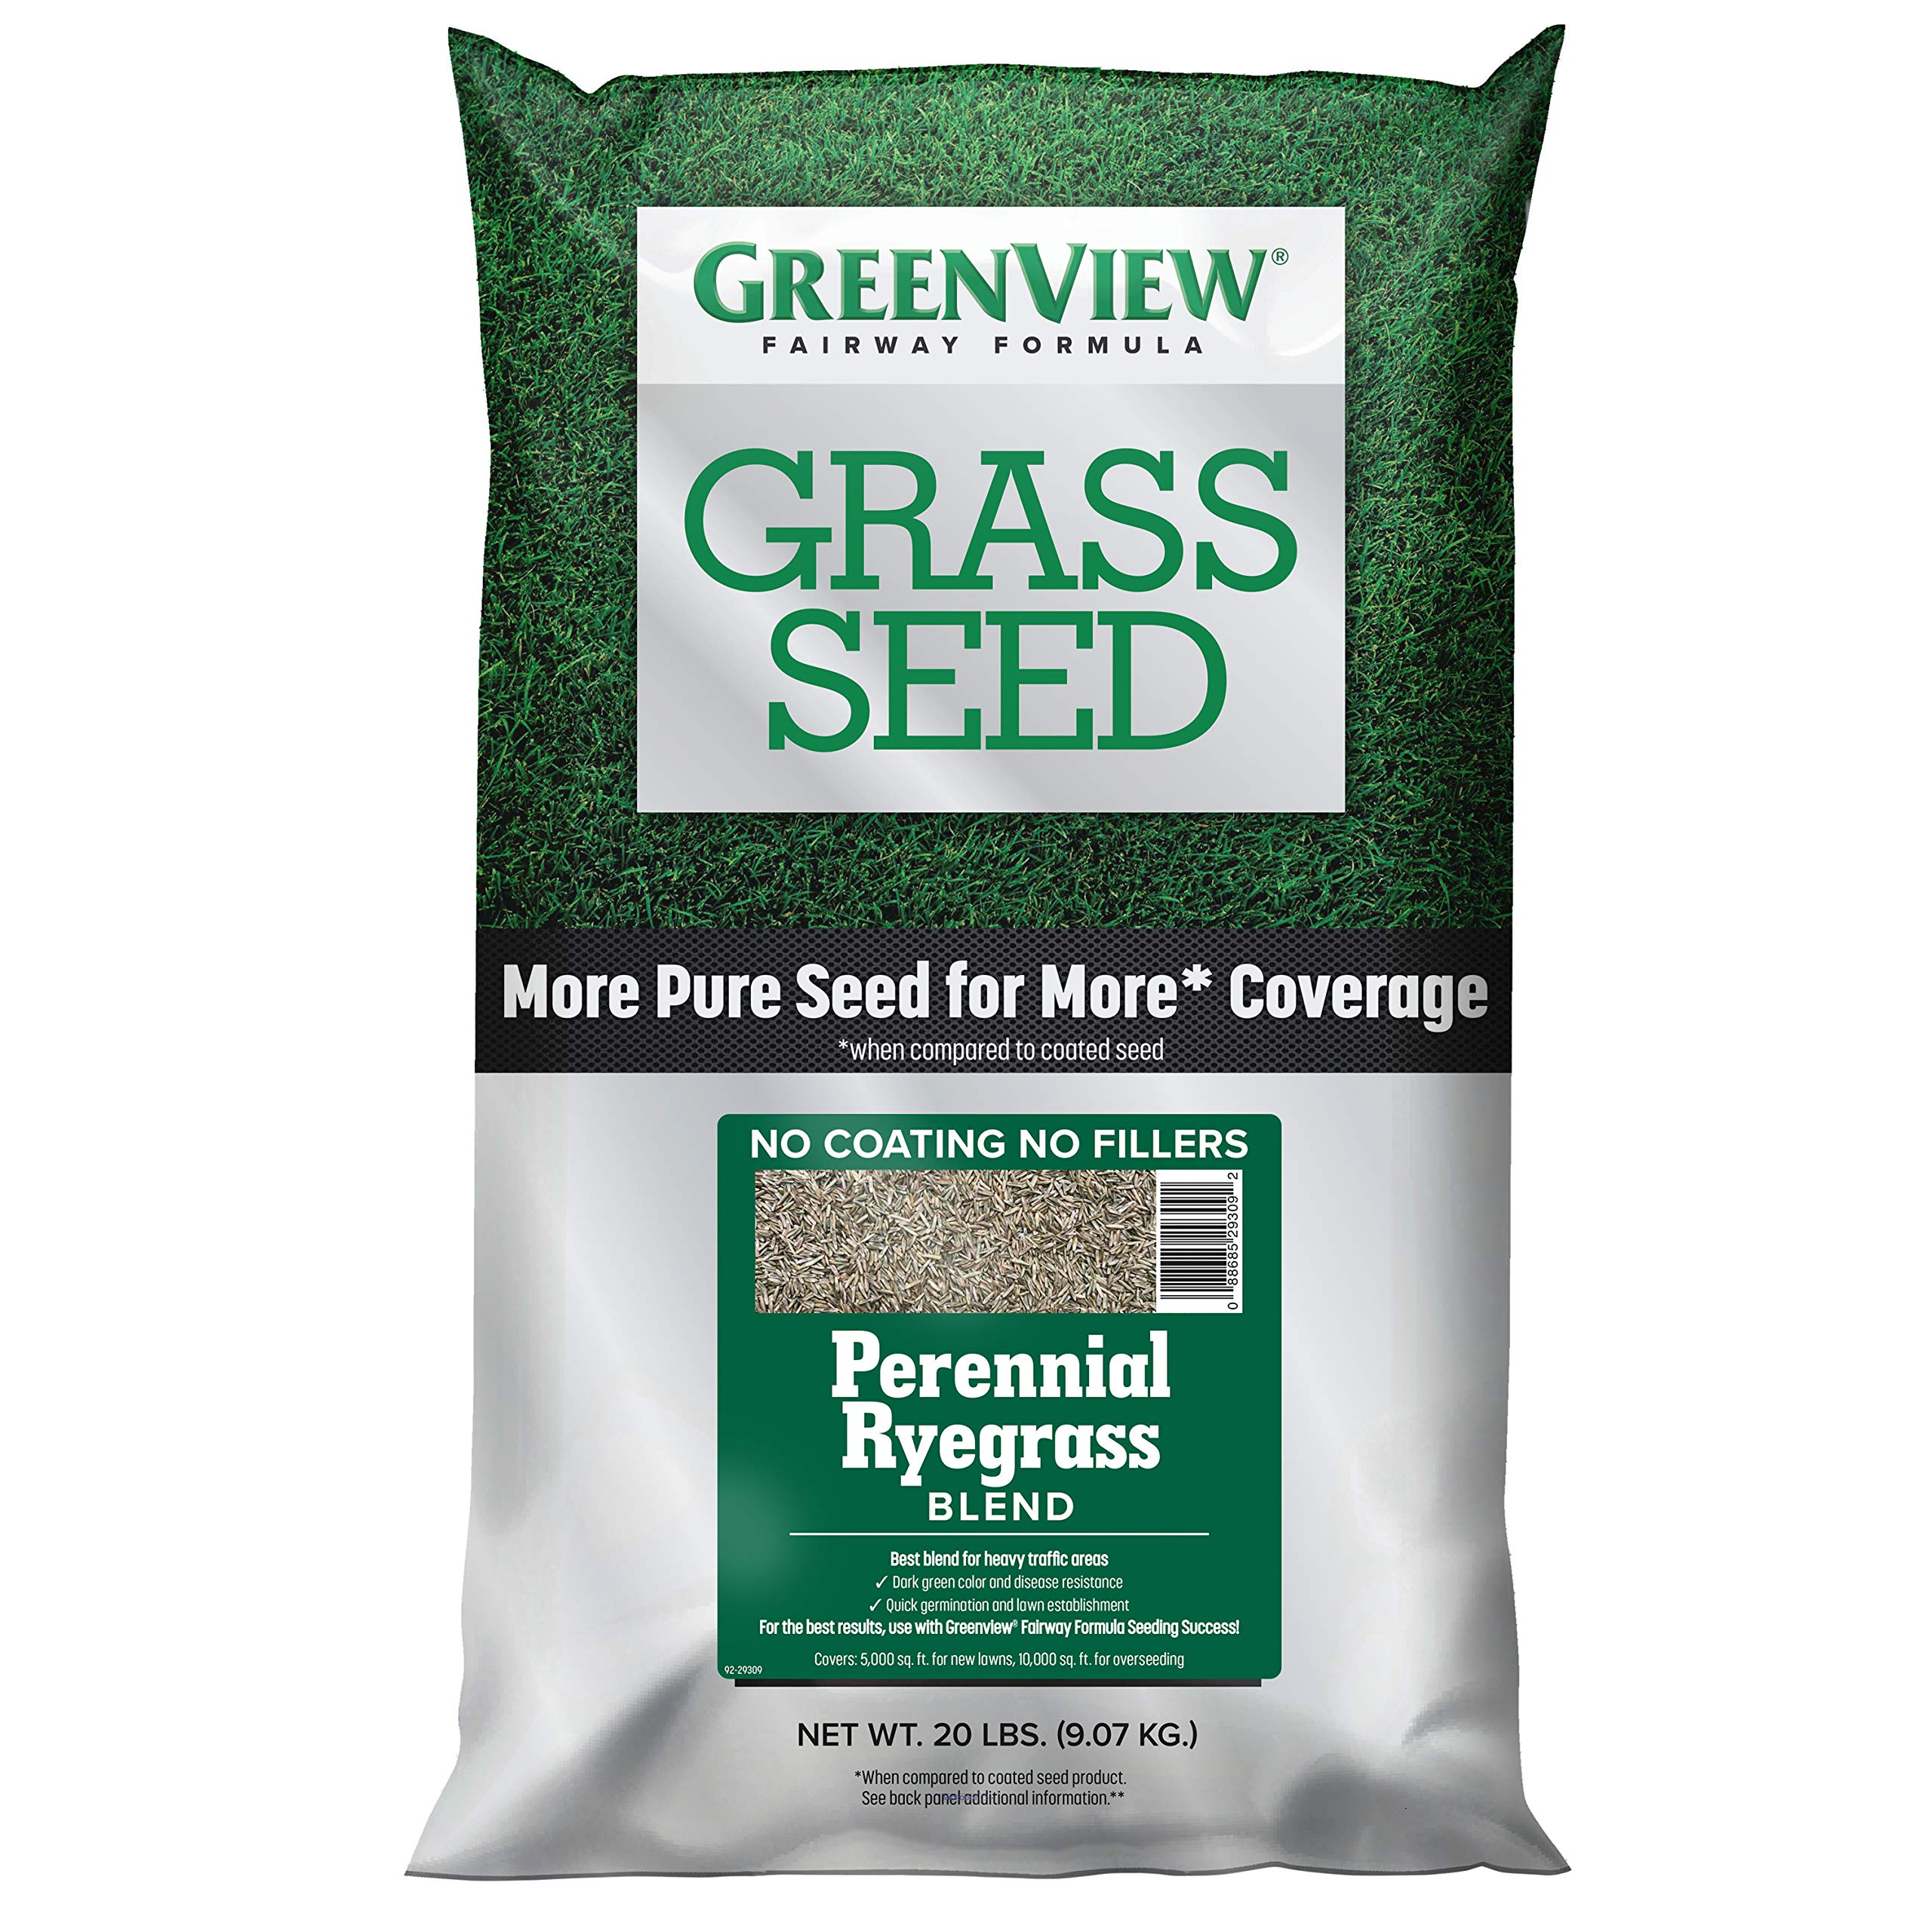 GreenView 2829355 Fairway Formula Grass Seed Perennial Ryegrass Blend, 20 lb. by GreenView